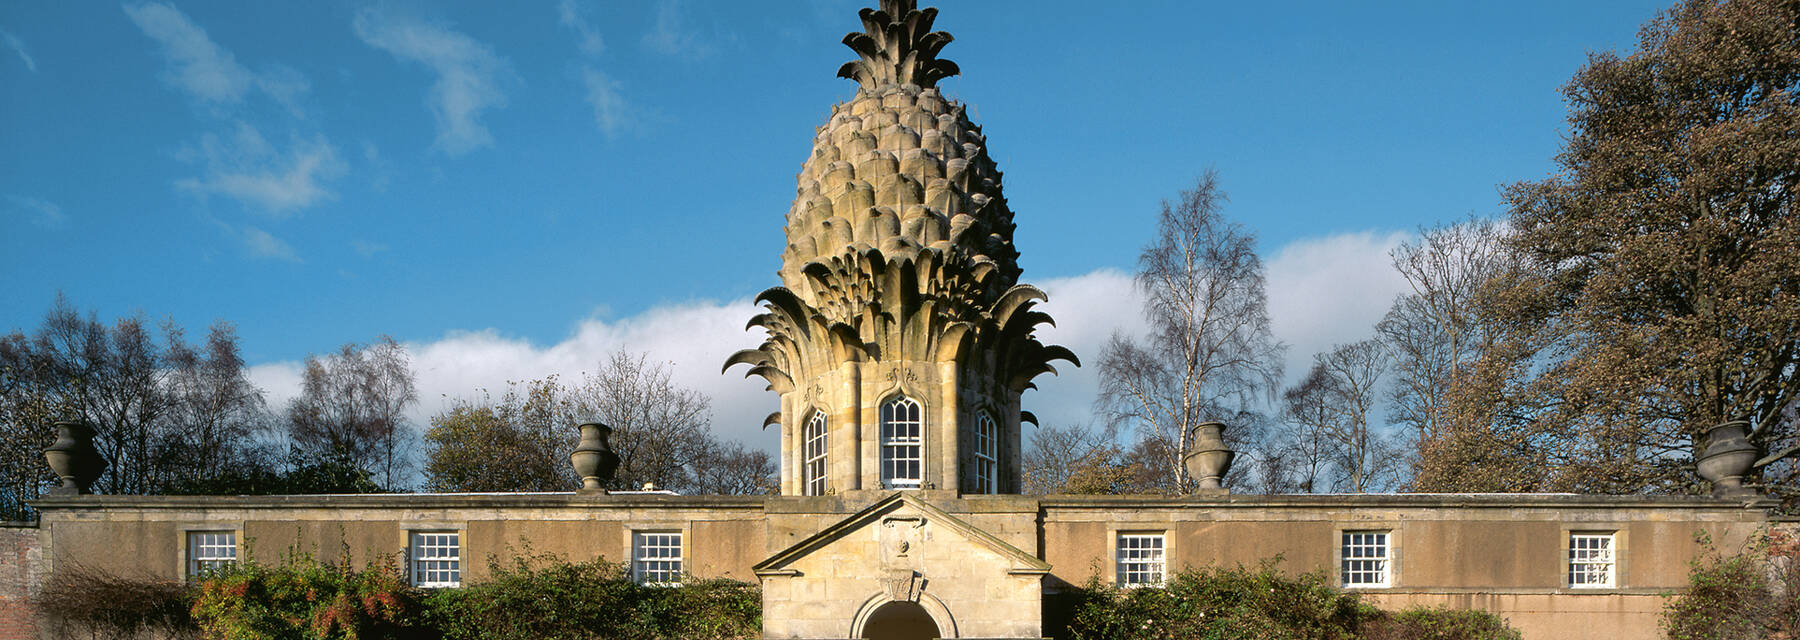 The front exterior of the Pineapple